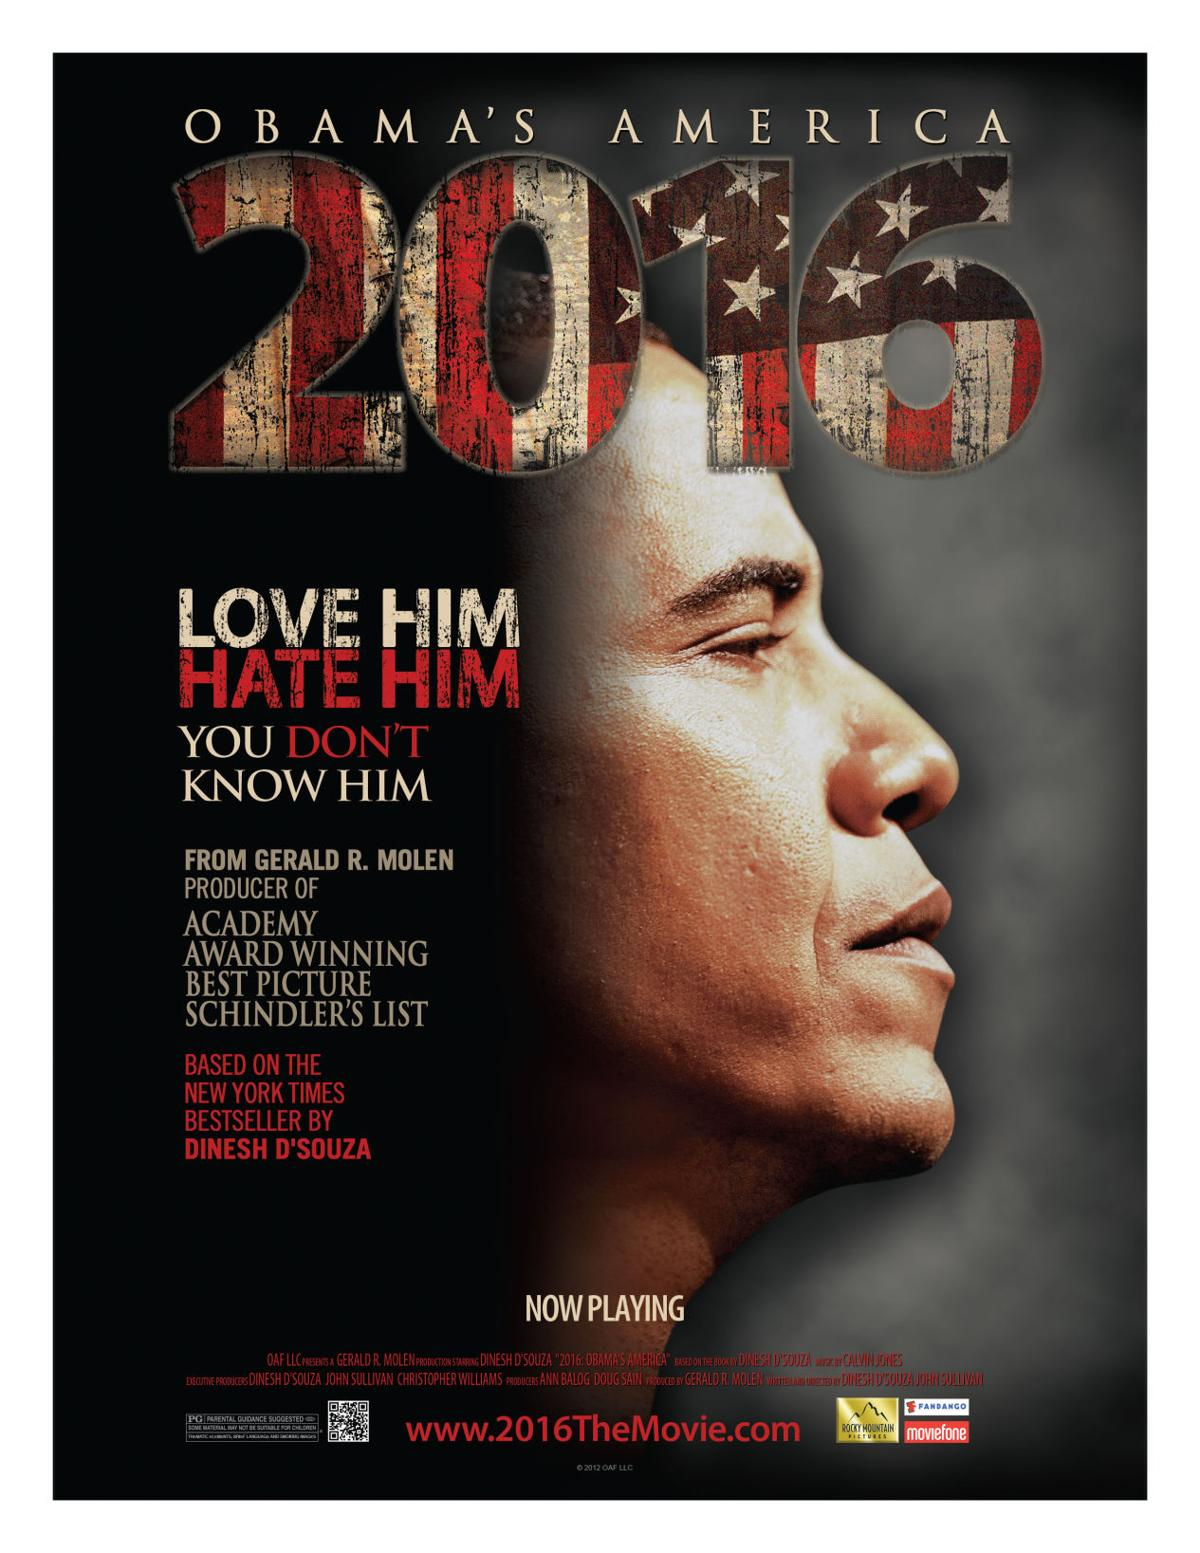 '2016: Obama's America' a conservative vision of Obama's second term